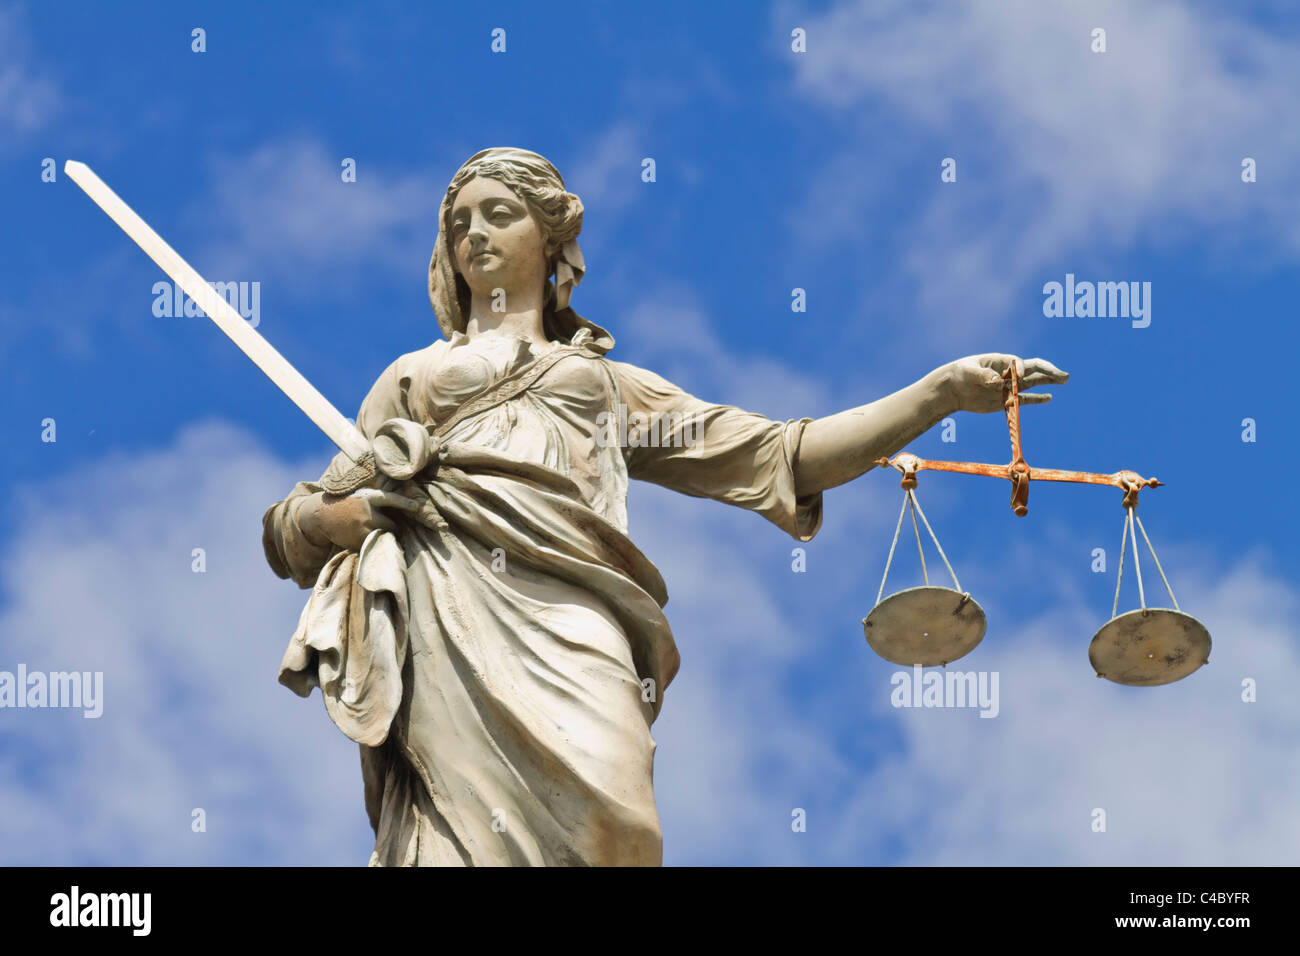 Lady Justice statue in Dublin, Ireland - Stock Image